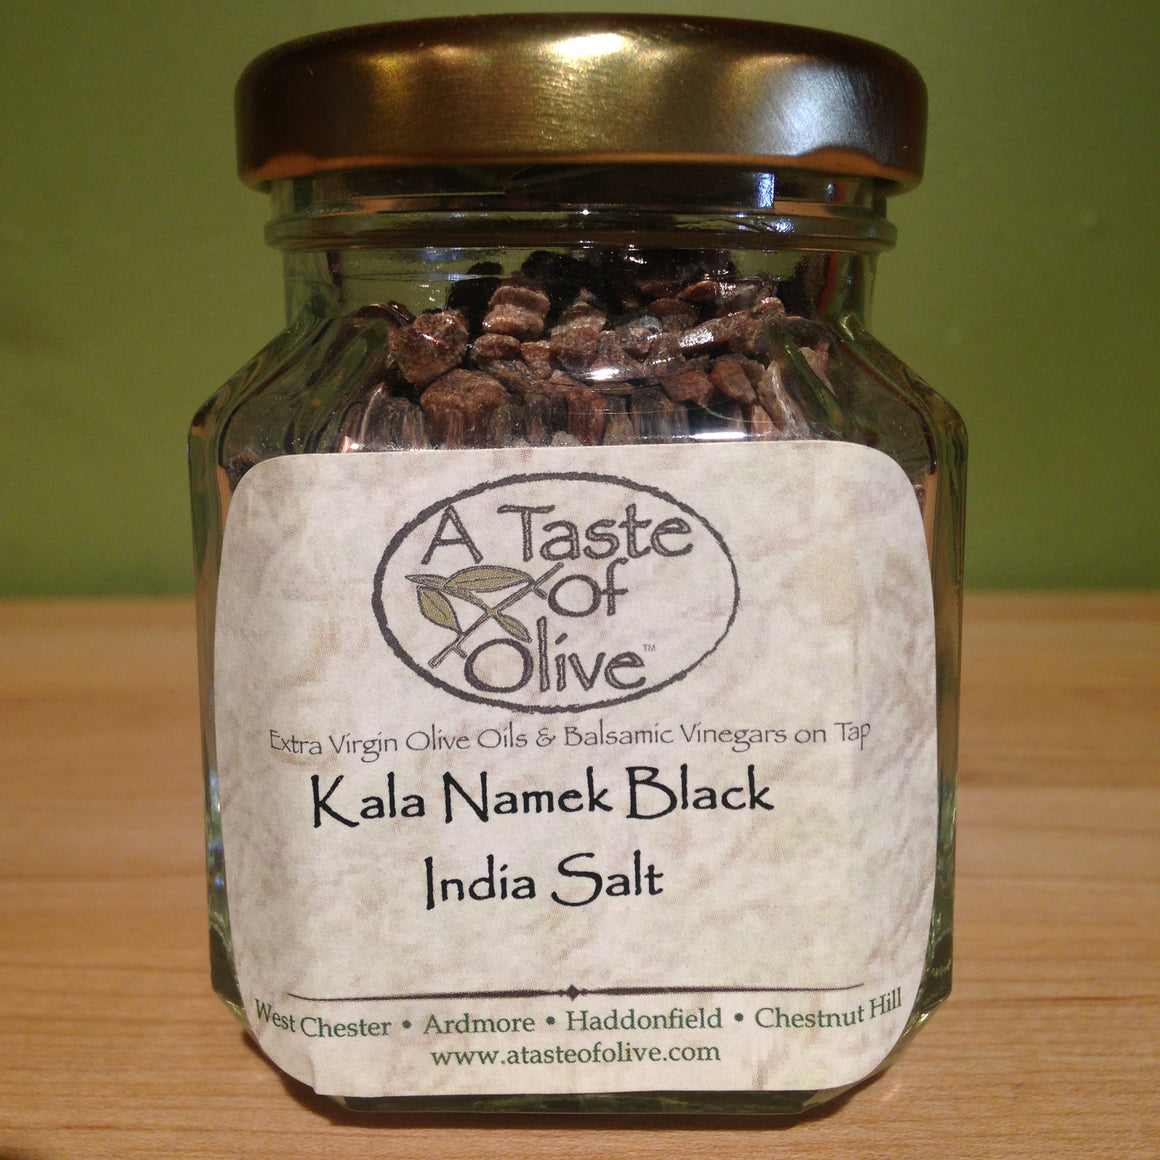 Kala Namak Black Indian Salt - A Taste of Olive